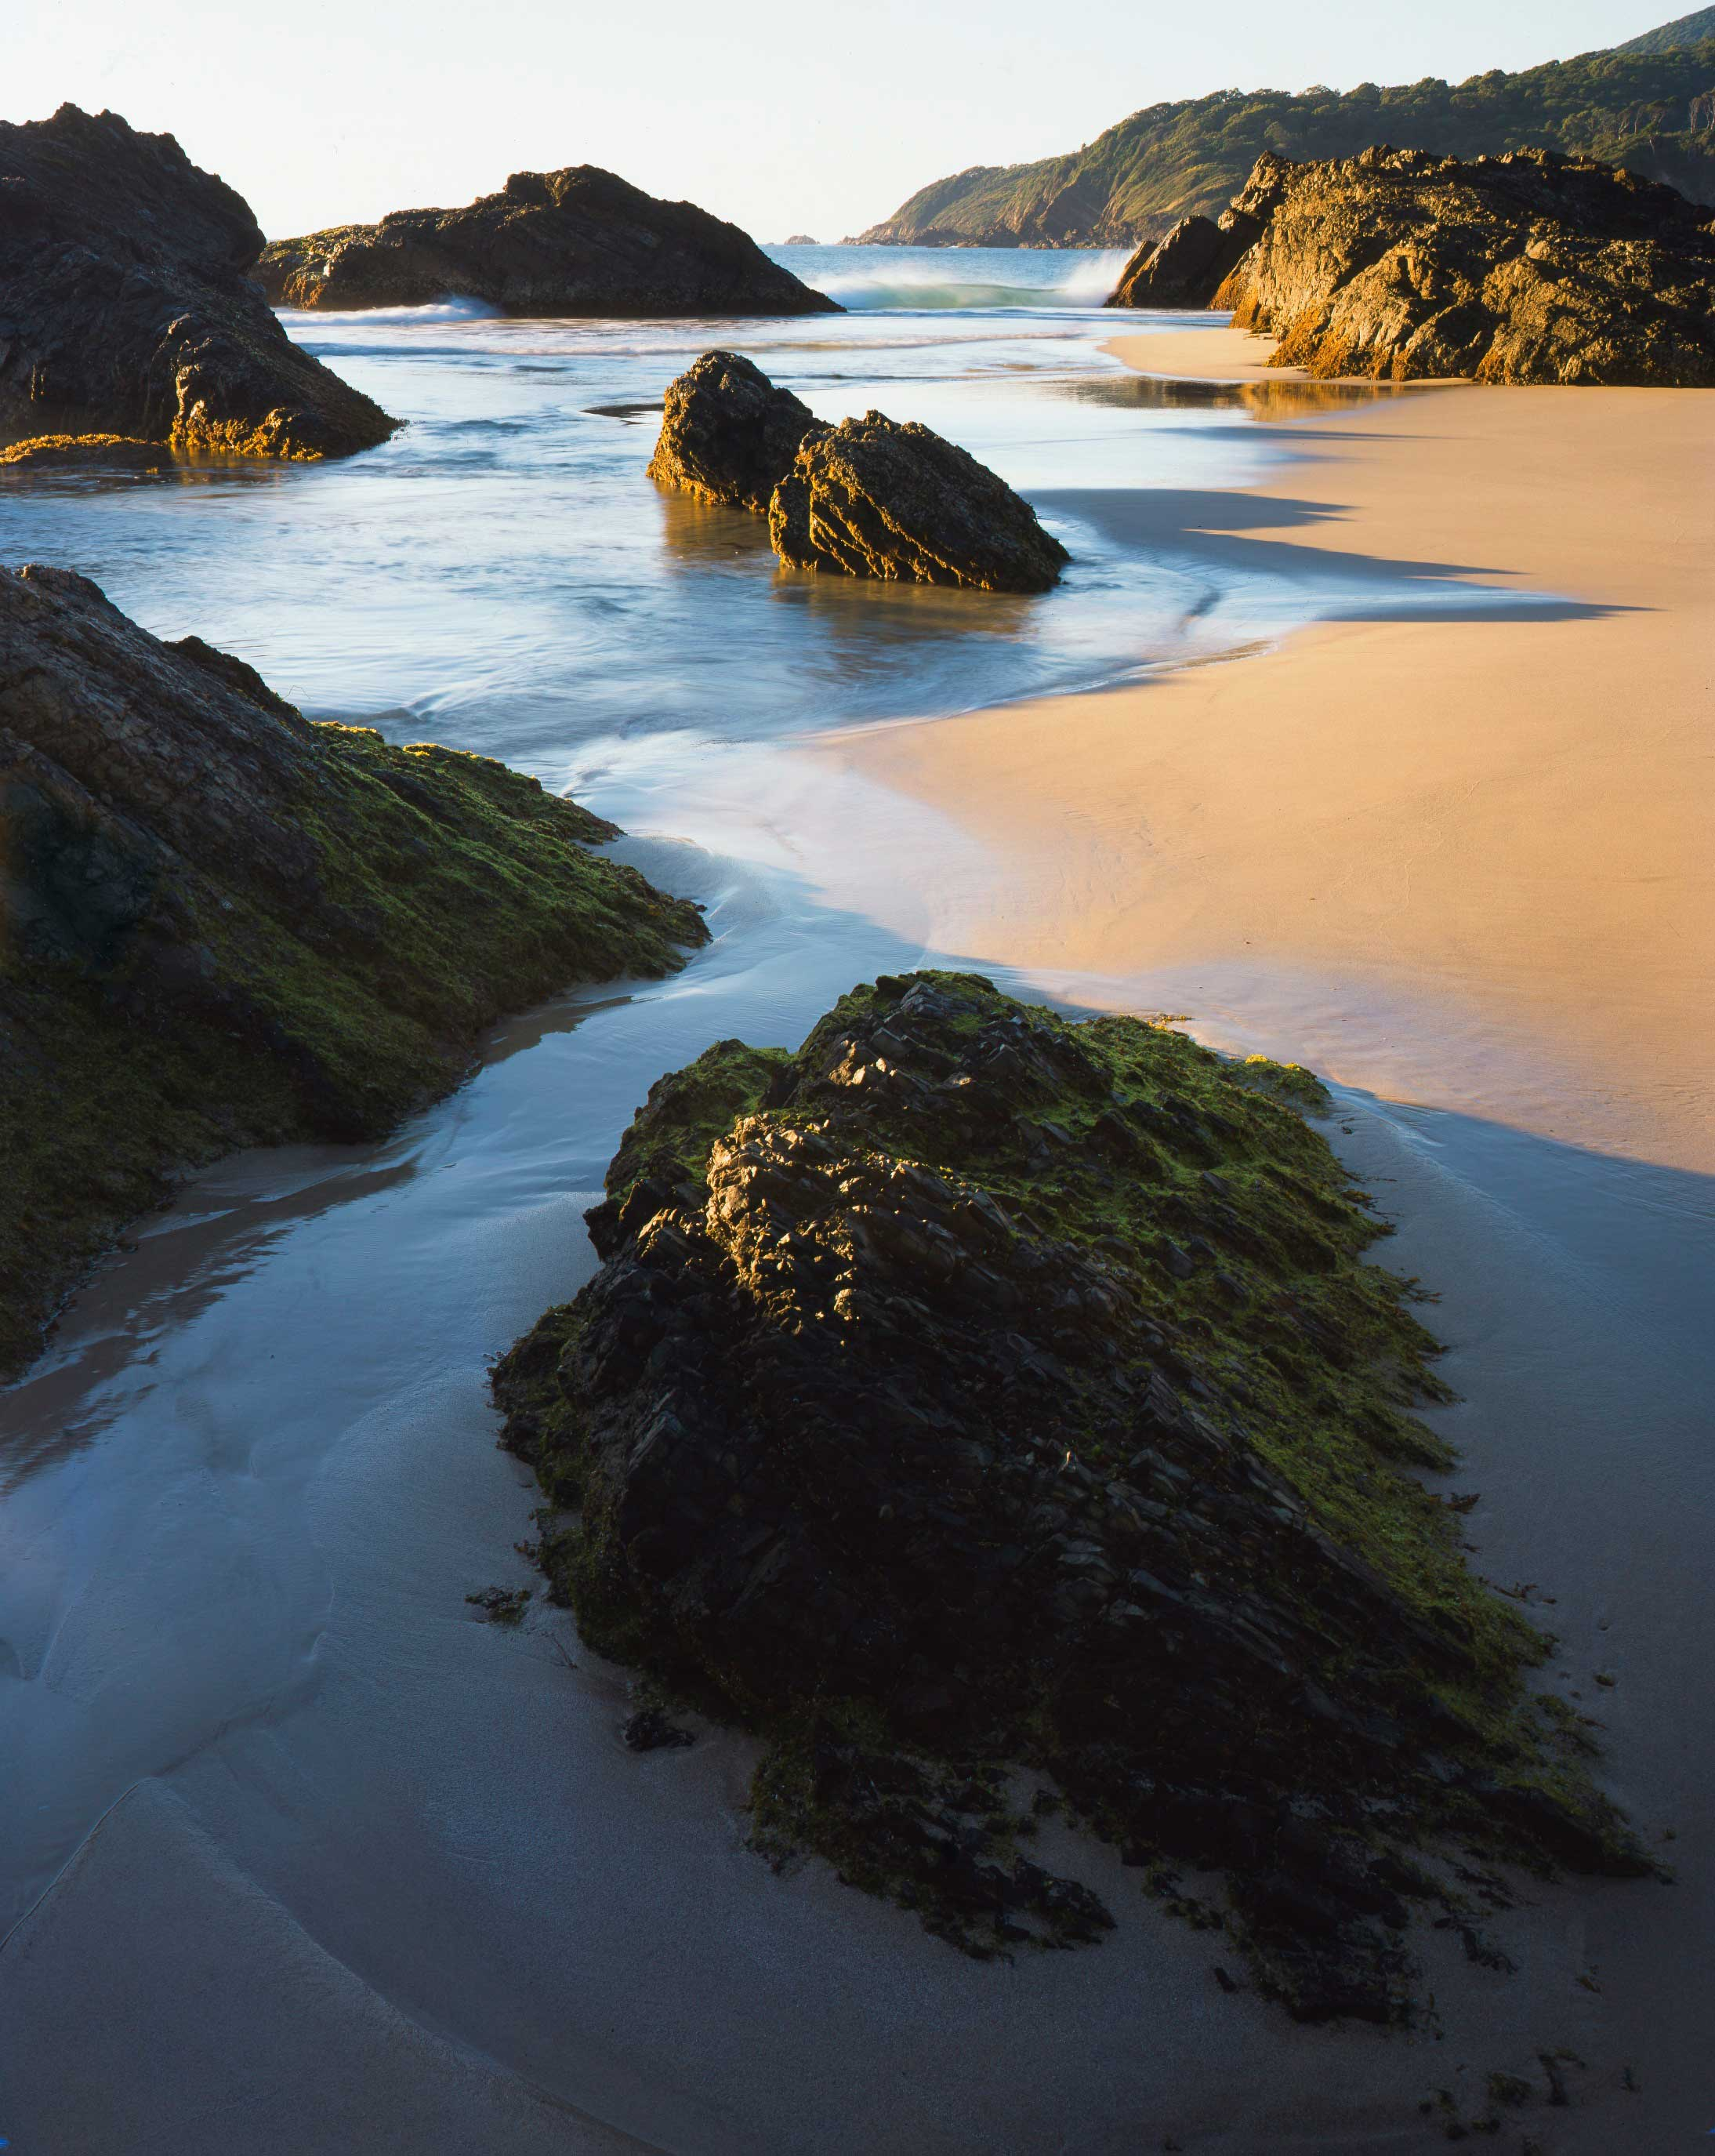 rock-formations-low-tide-burgers-beach.jpg